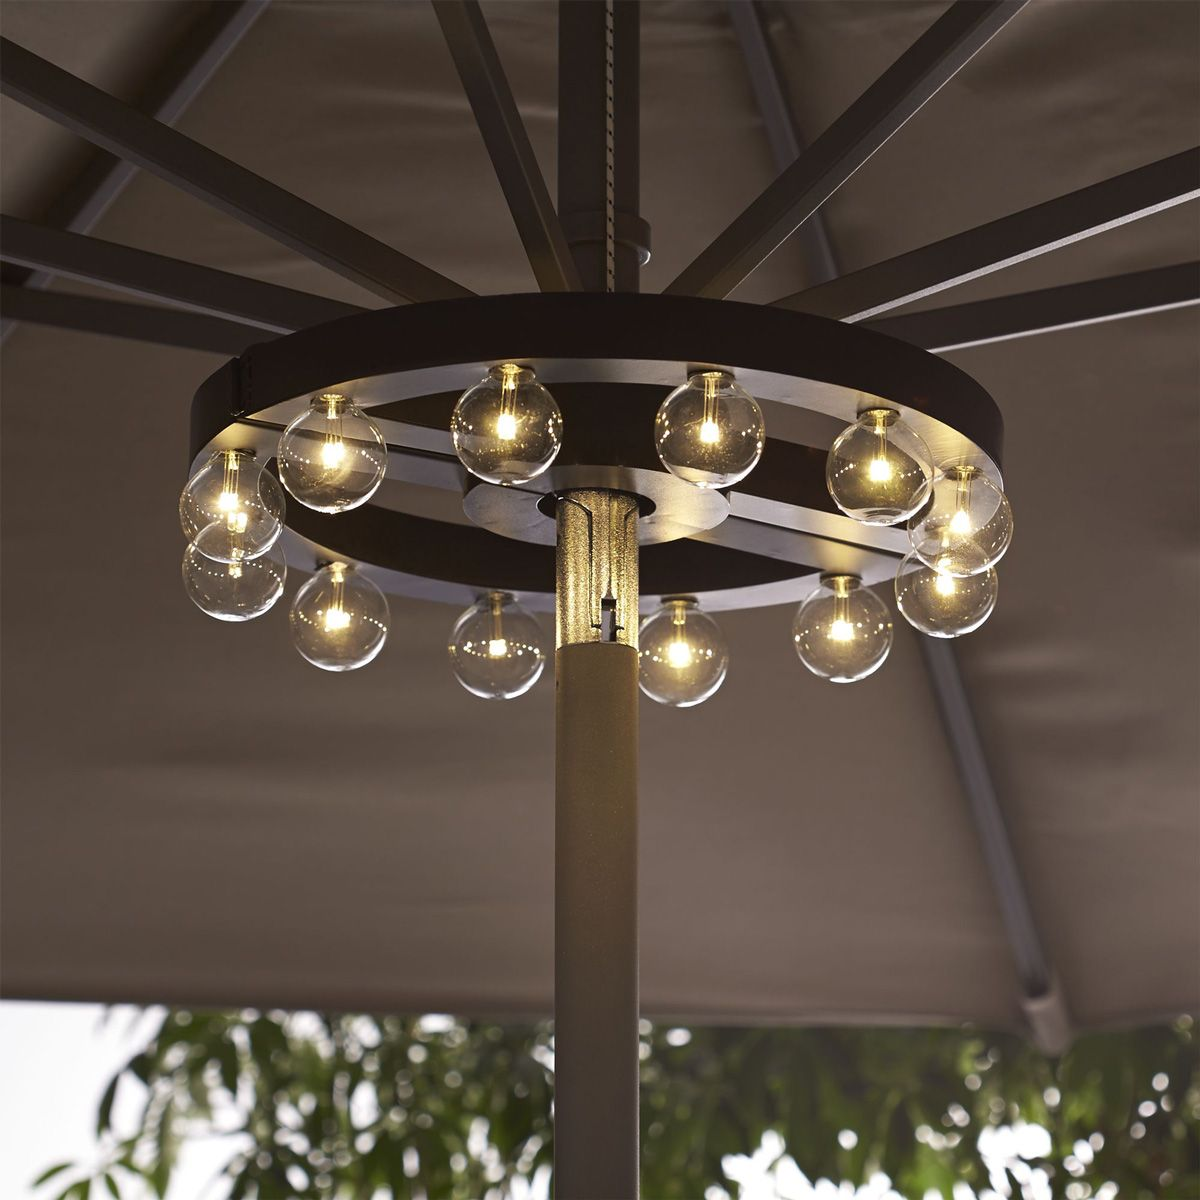 Solar Umbrella Clip Lights Captivating Patio Umbrella Marquee Lights  Pinterest  Patio Umbrellas Marquee 2018